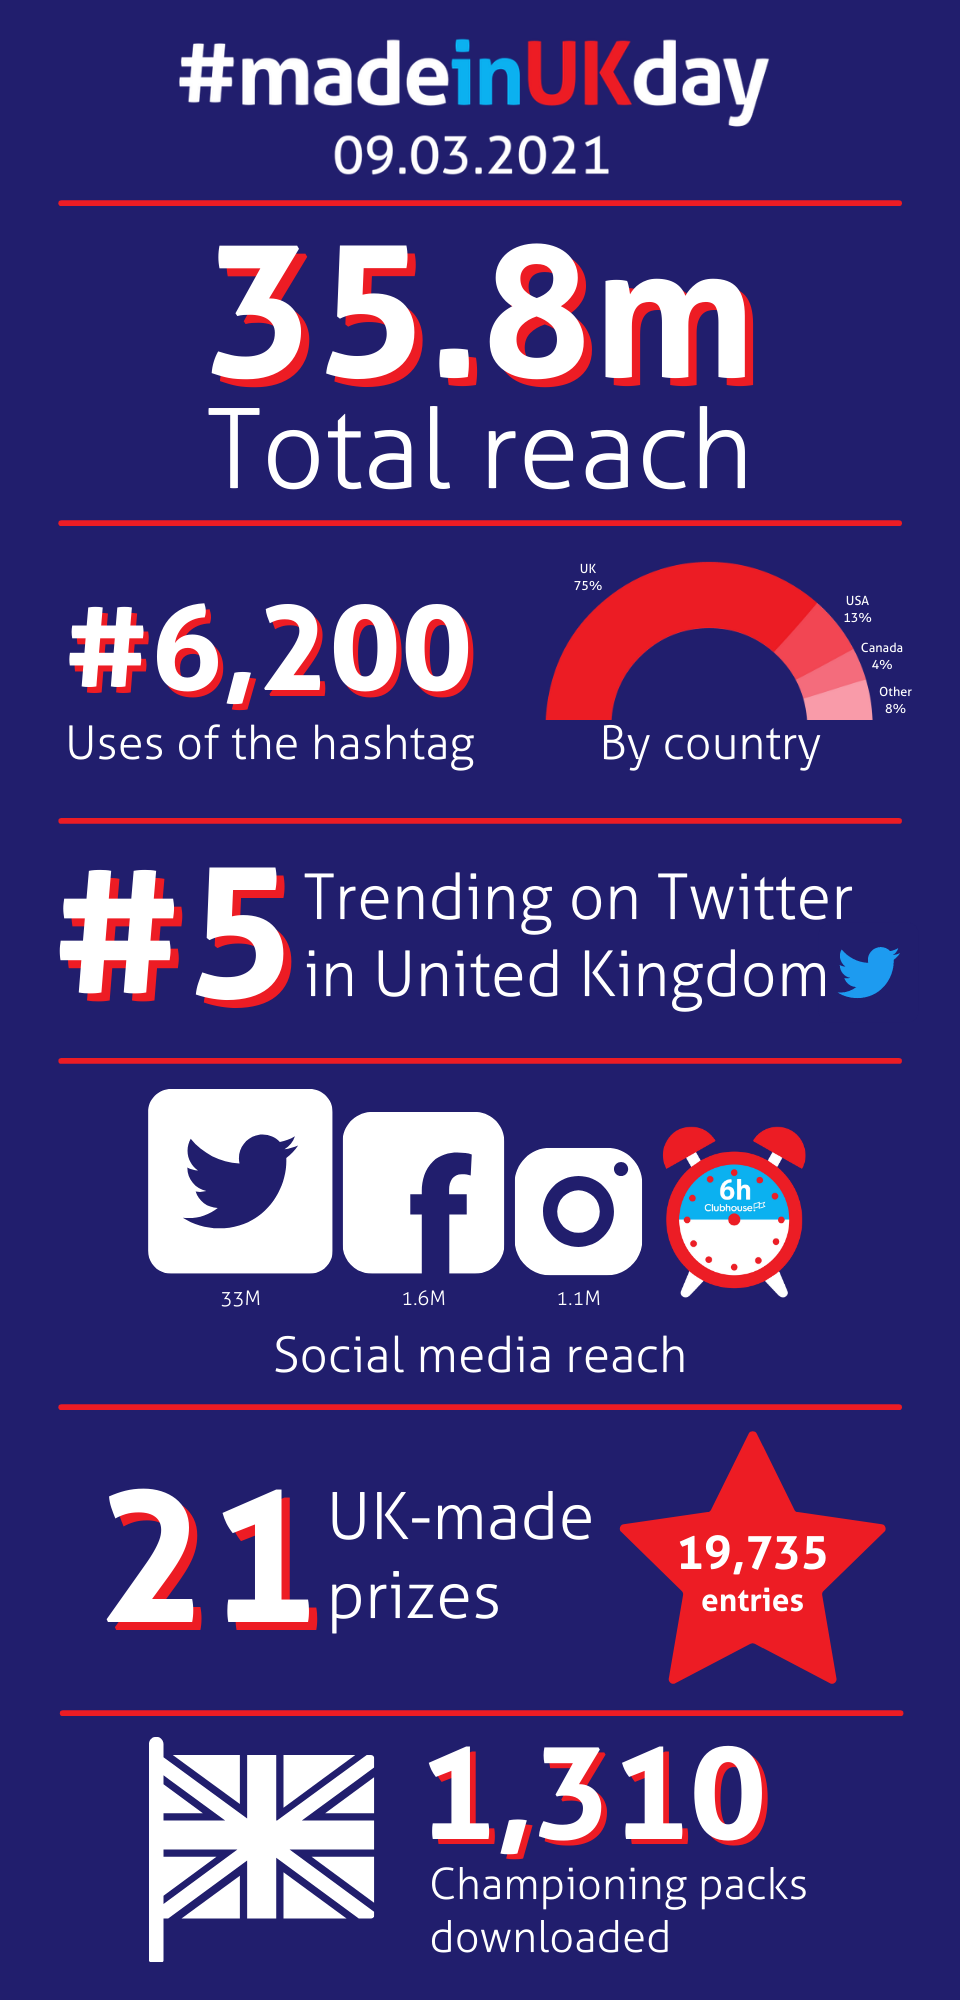 Made in UK Day 2021 Infographic stats